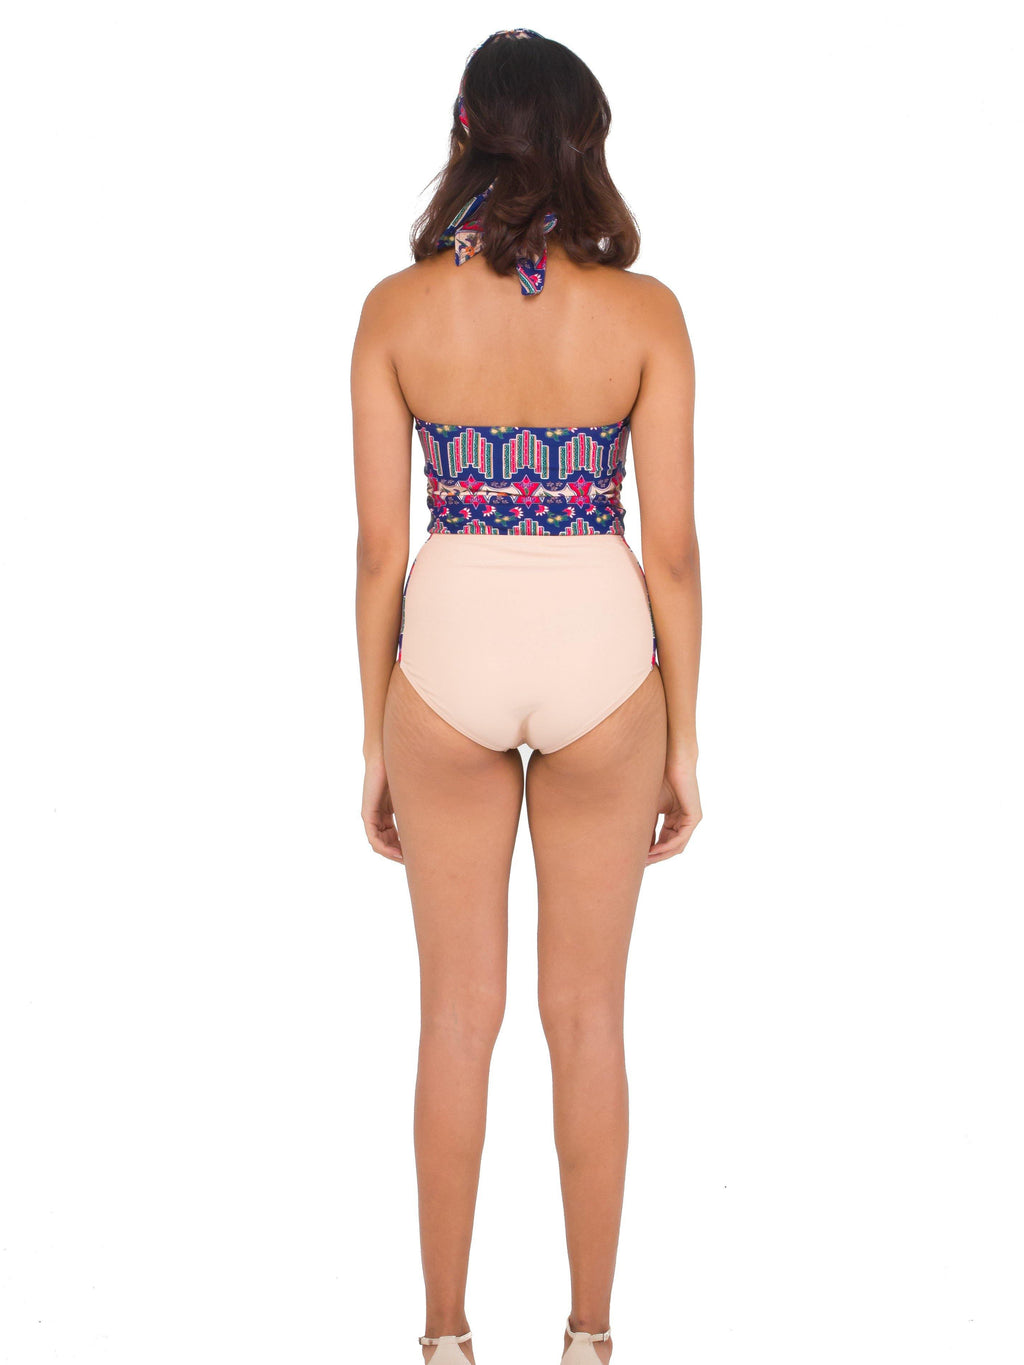 SIGNATURE BATIK Bayu Halter Cut-Out Swimsuit Mekar Nude - pink-n-proper